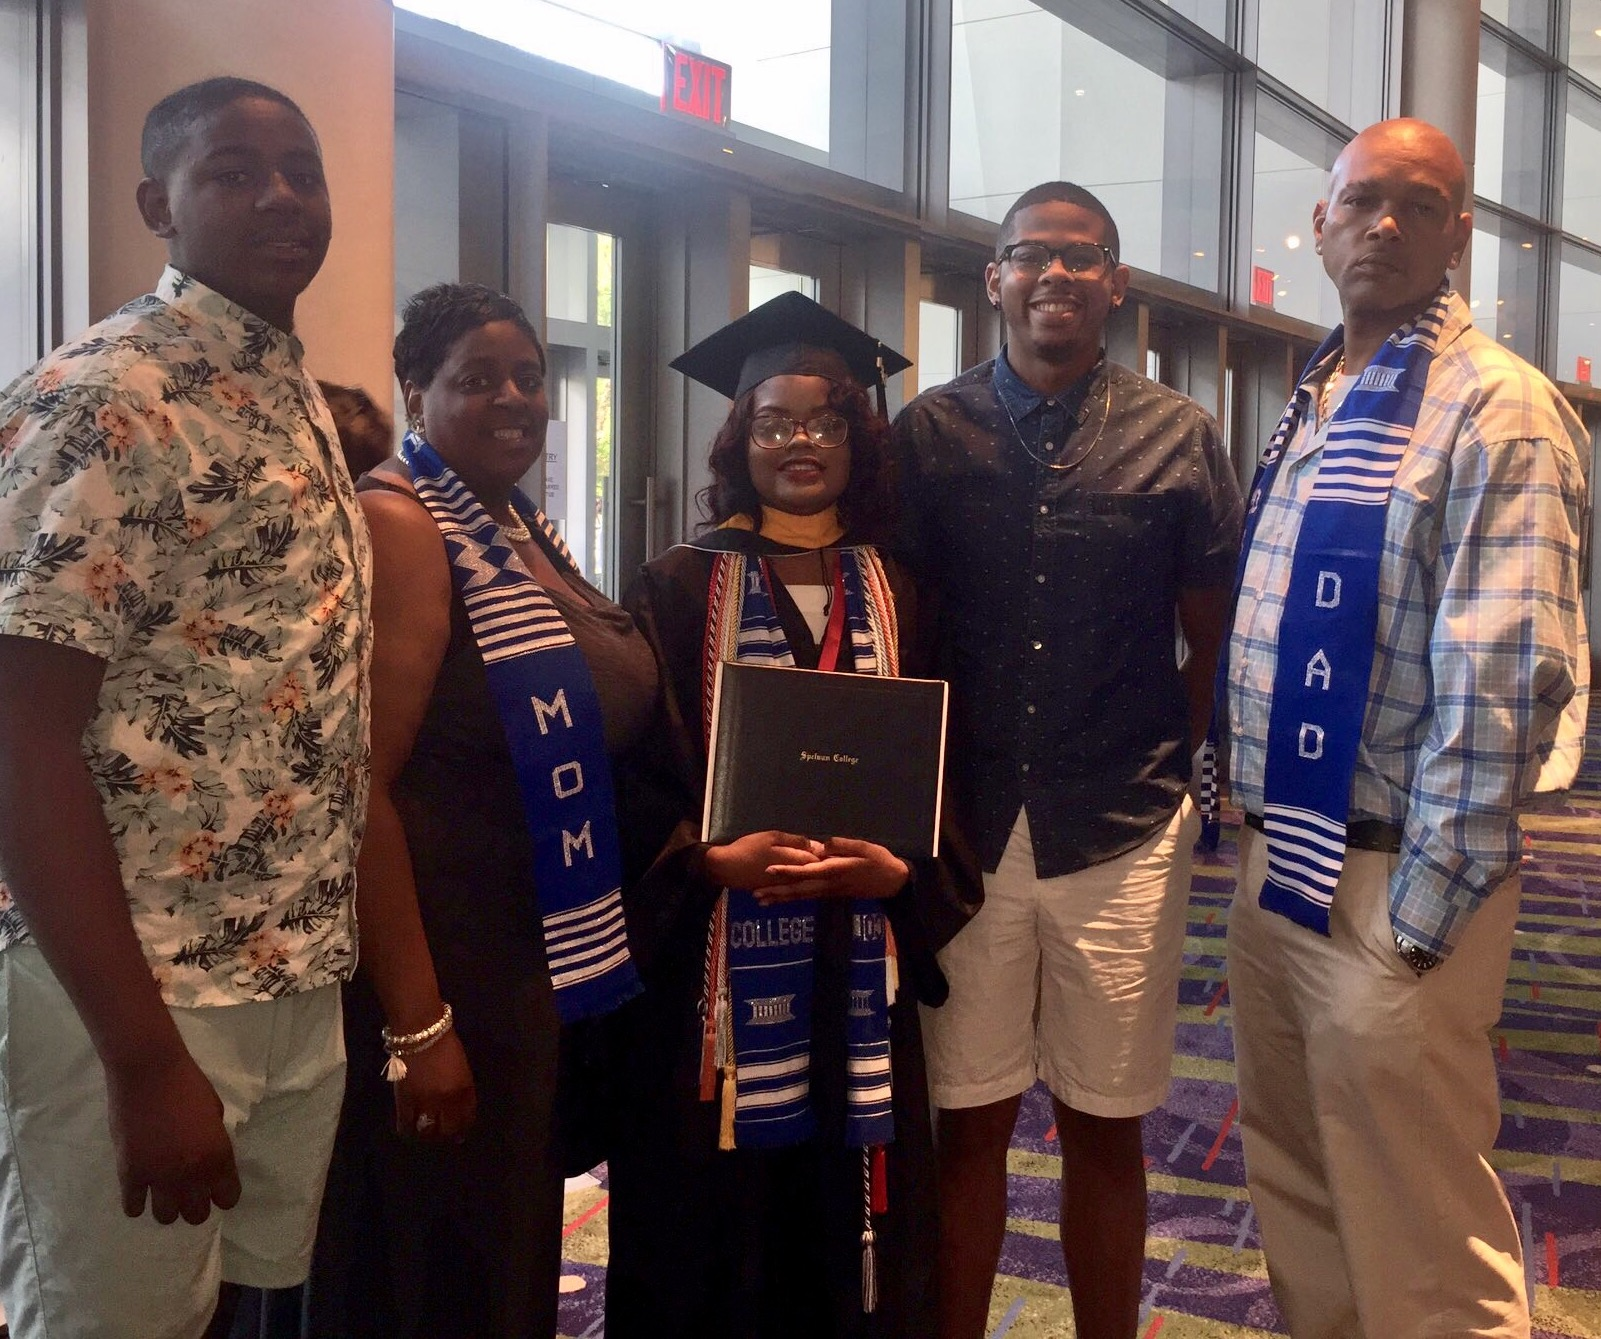 Taylor Williams-Hamilton surrounded by family after graduation from Spelman College.